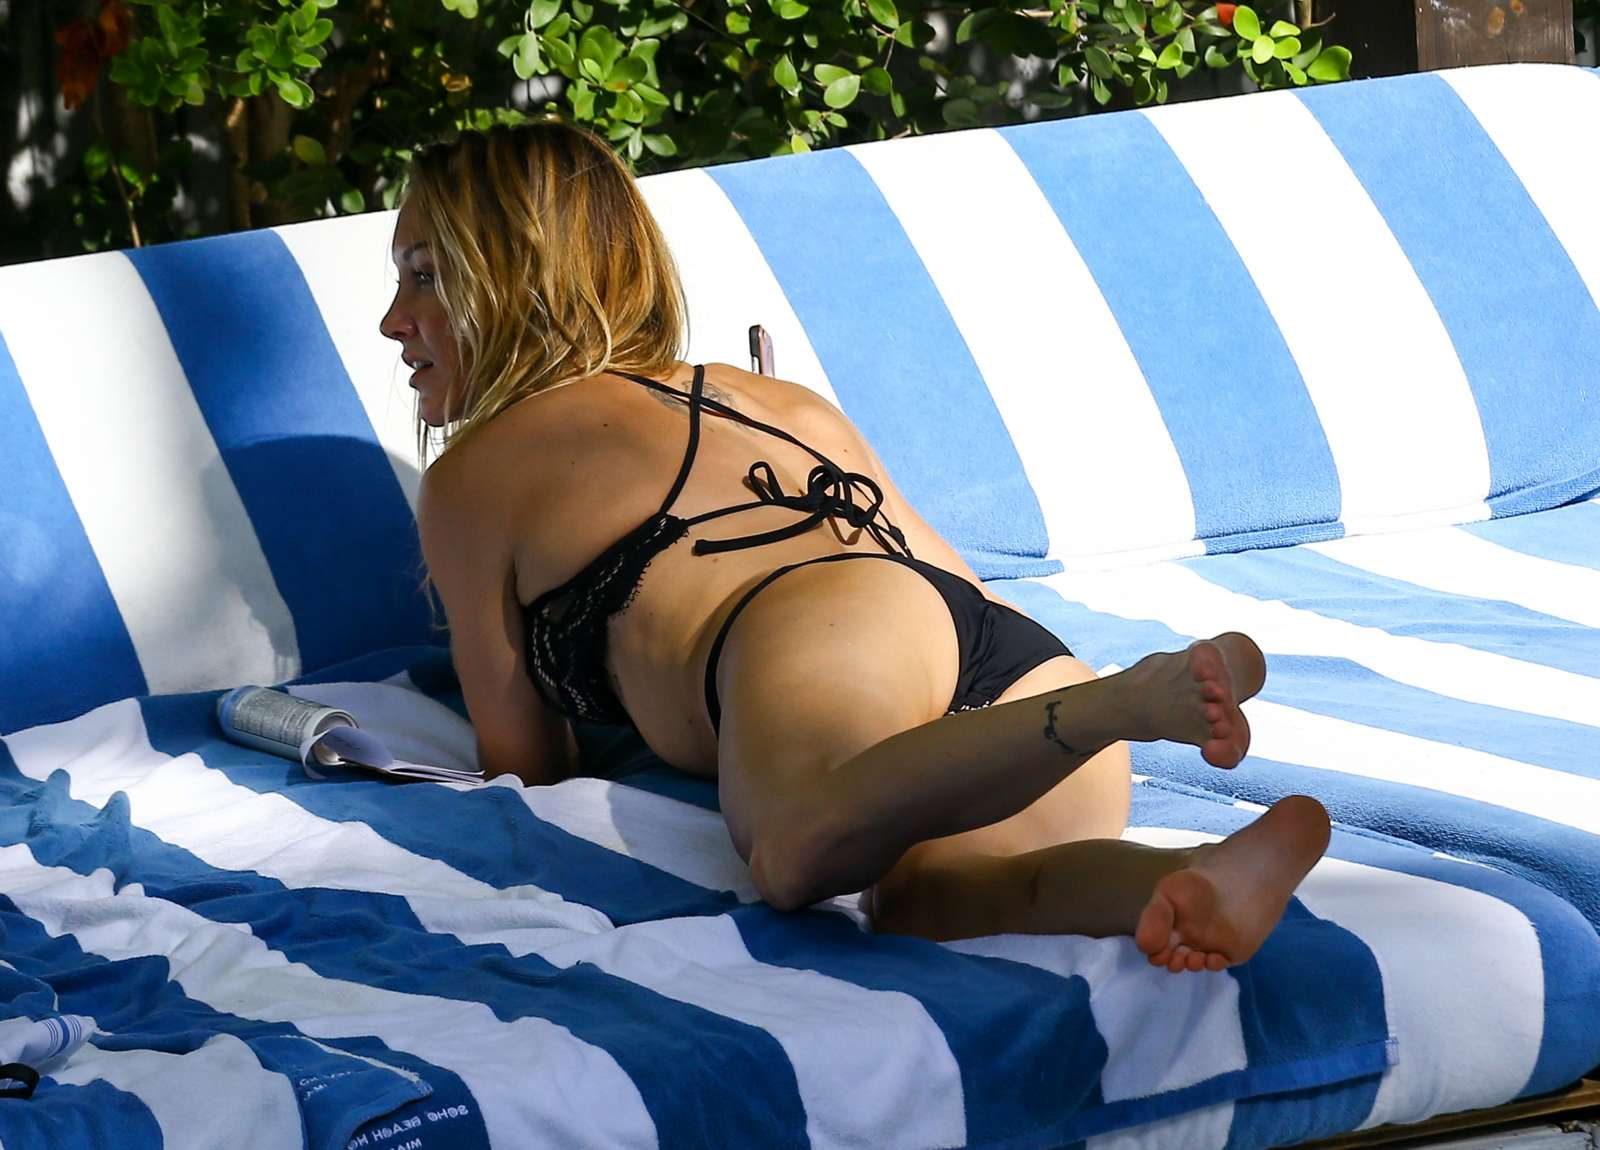 Katie Cassidy in Black Bikini at the pool in Miami   Katie-Cassidy-in-Black-Bikini-2016--19